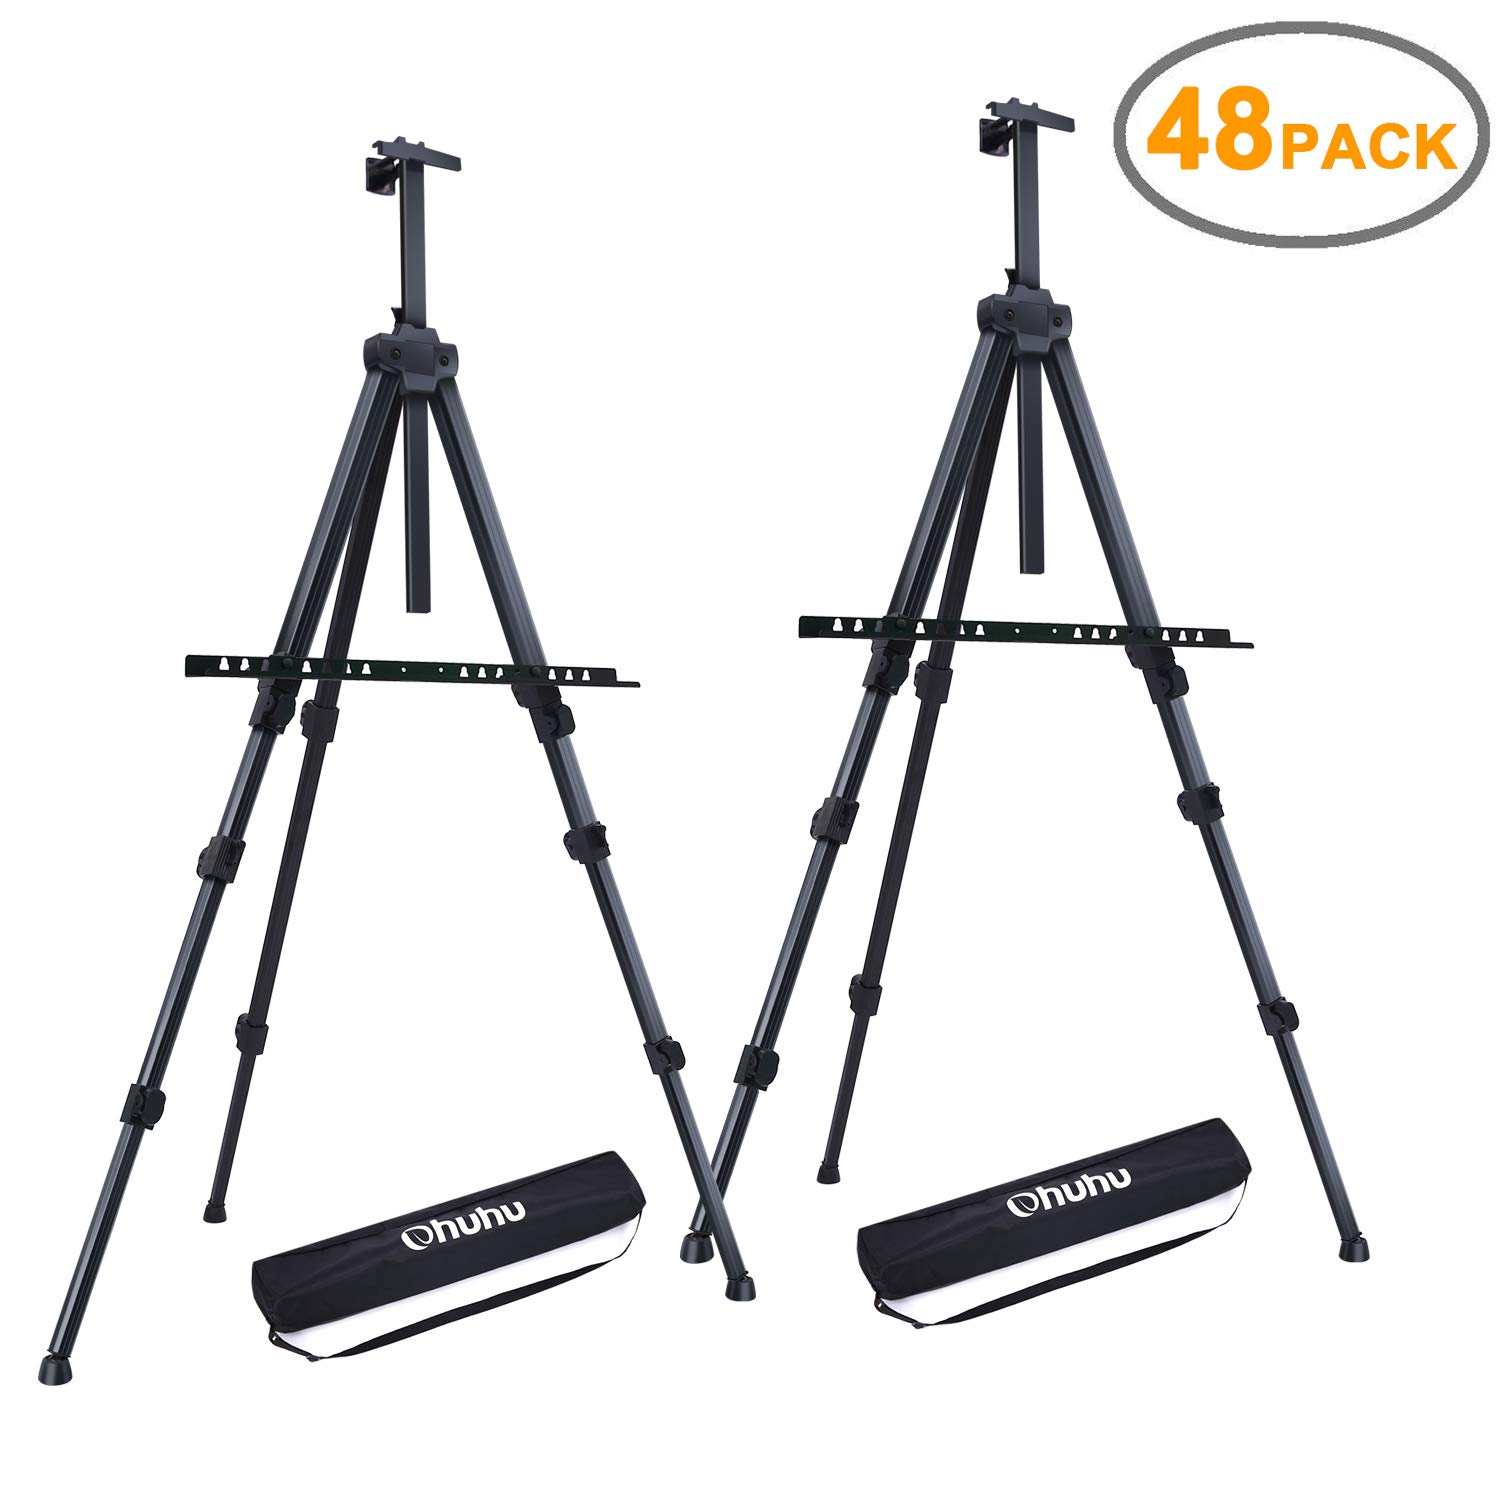 Display Easel Stand, Ohuhu 48-Pack 72'' Aluminum Metal Tripod Field Easel with Bag for Table-Top/Floor, Black Art Easels W/Adjustable Height from 25-72'' for Poster, Paint Back to School